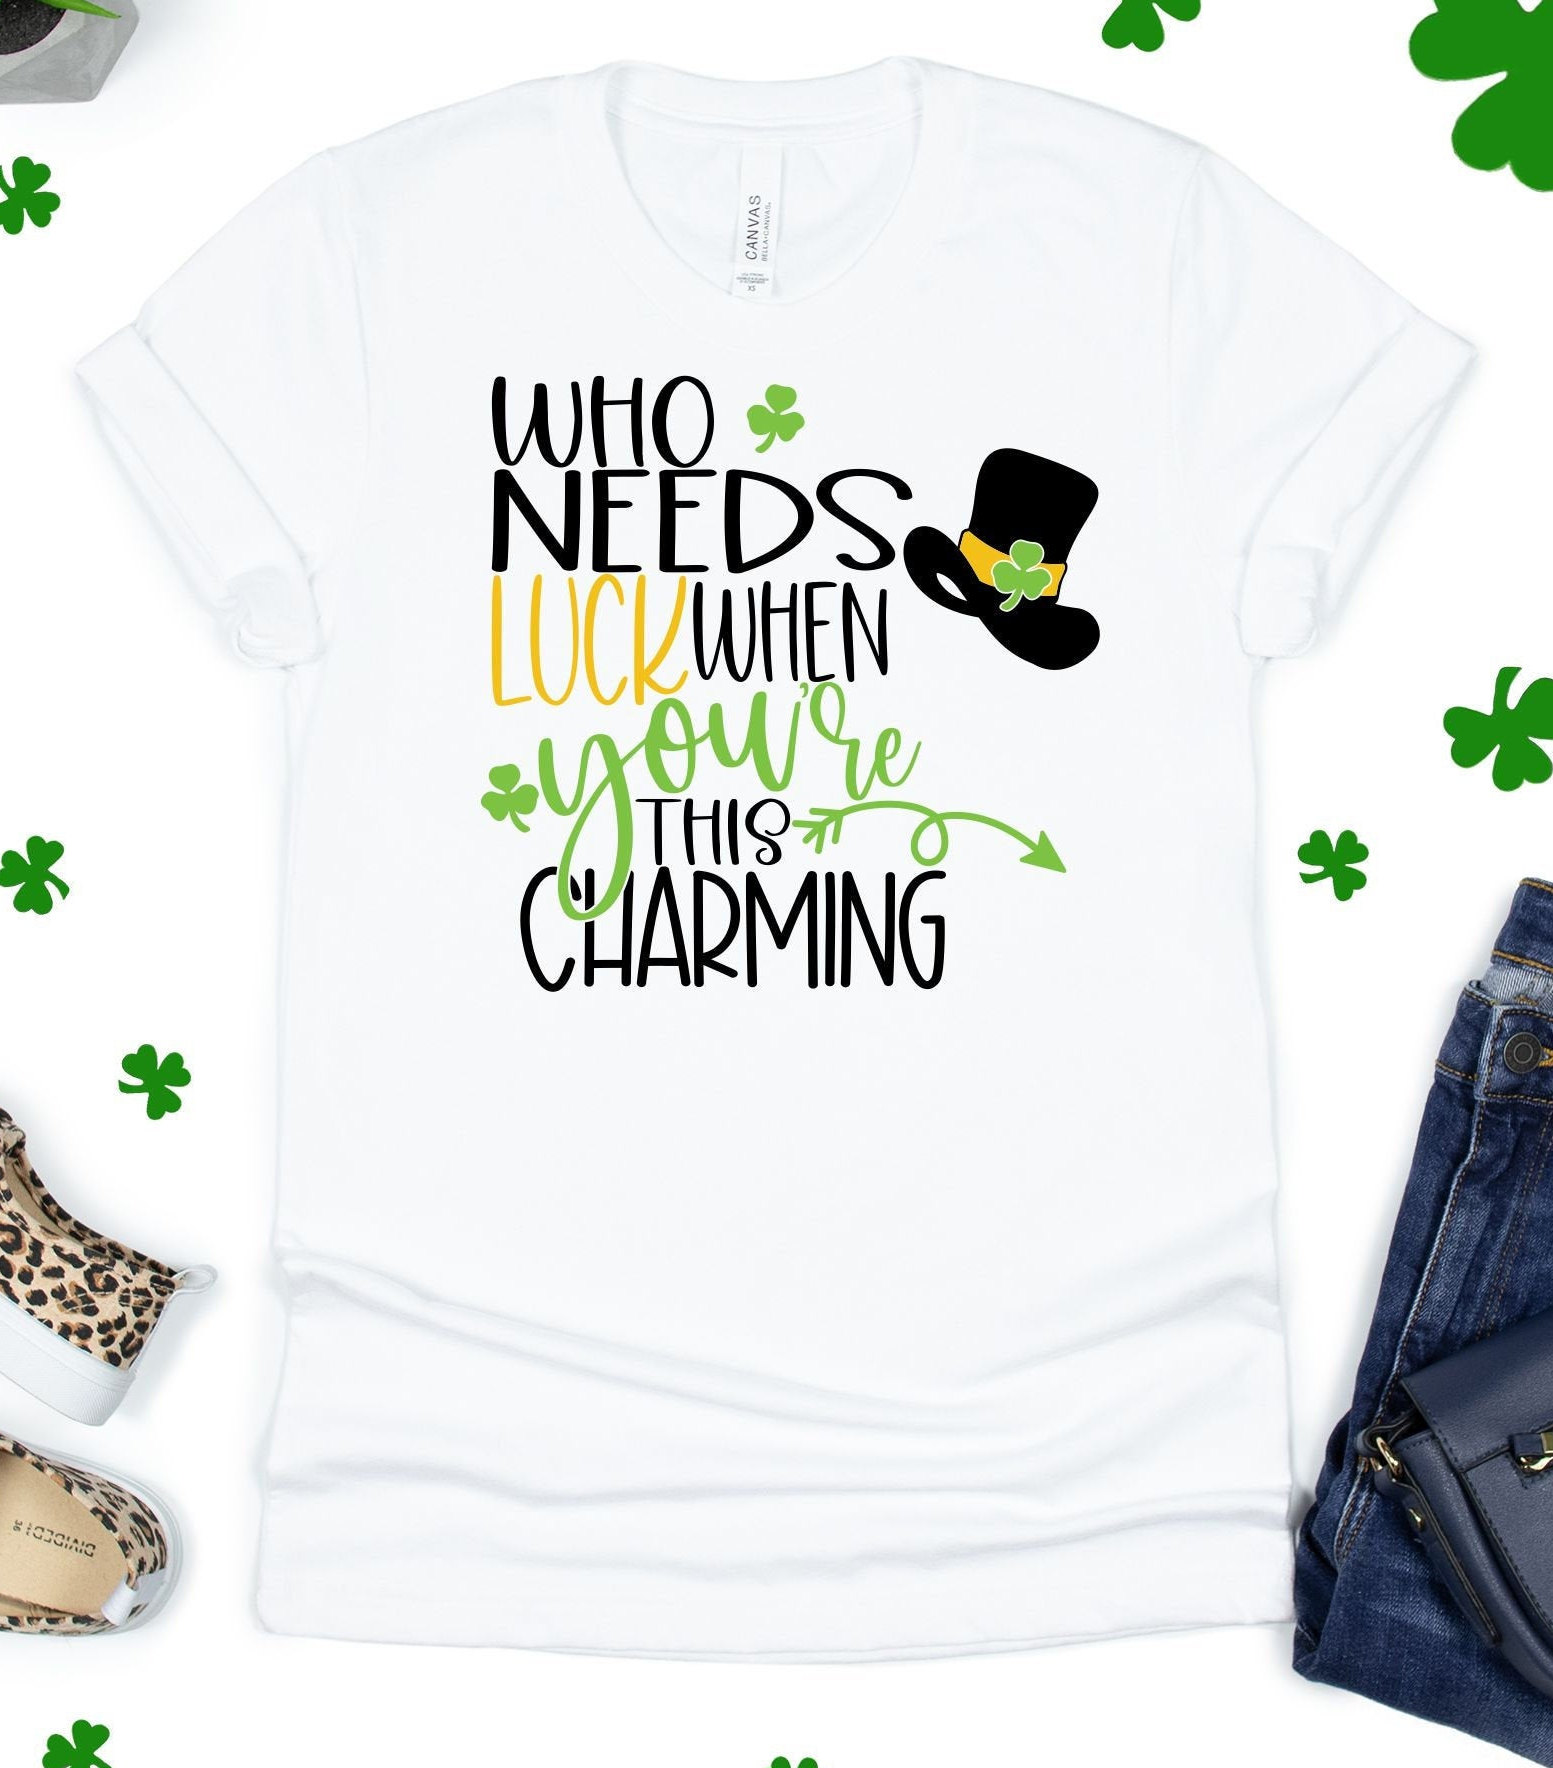 St-patricks-day-svg-who-needs-luck-when-your-charming-svg-irish-svg-shamrock-svg-st-patricks-day-svg-st-patricks-day-cut-file-cricut-60513f25